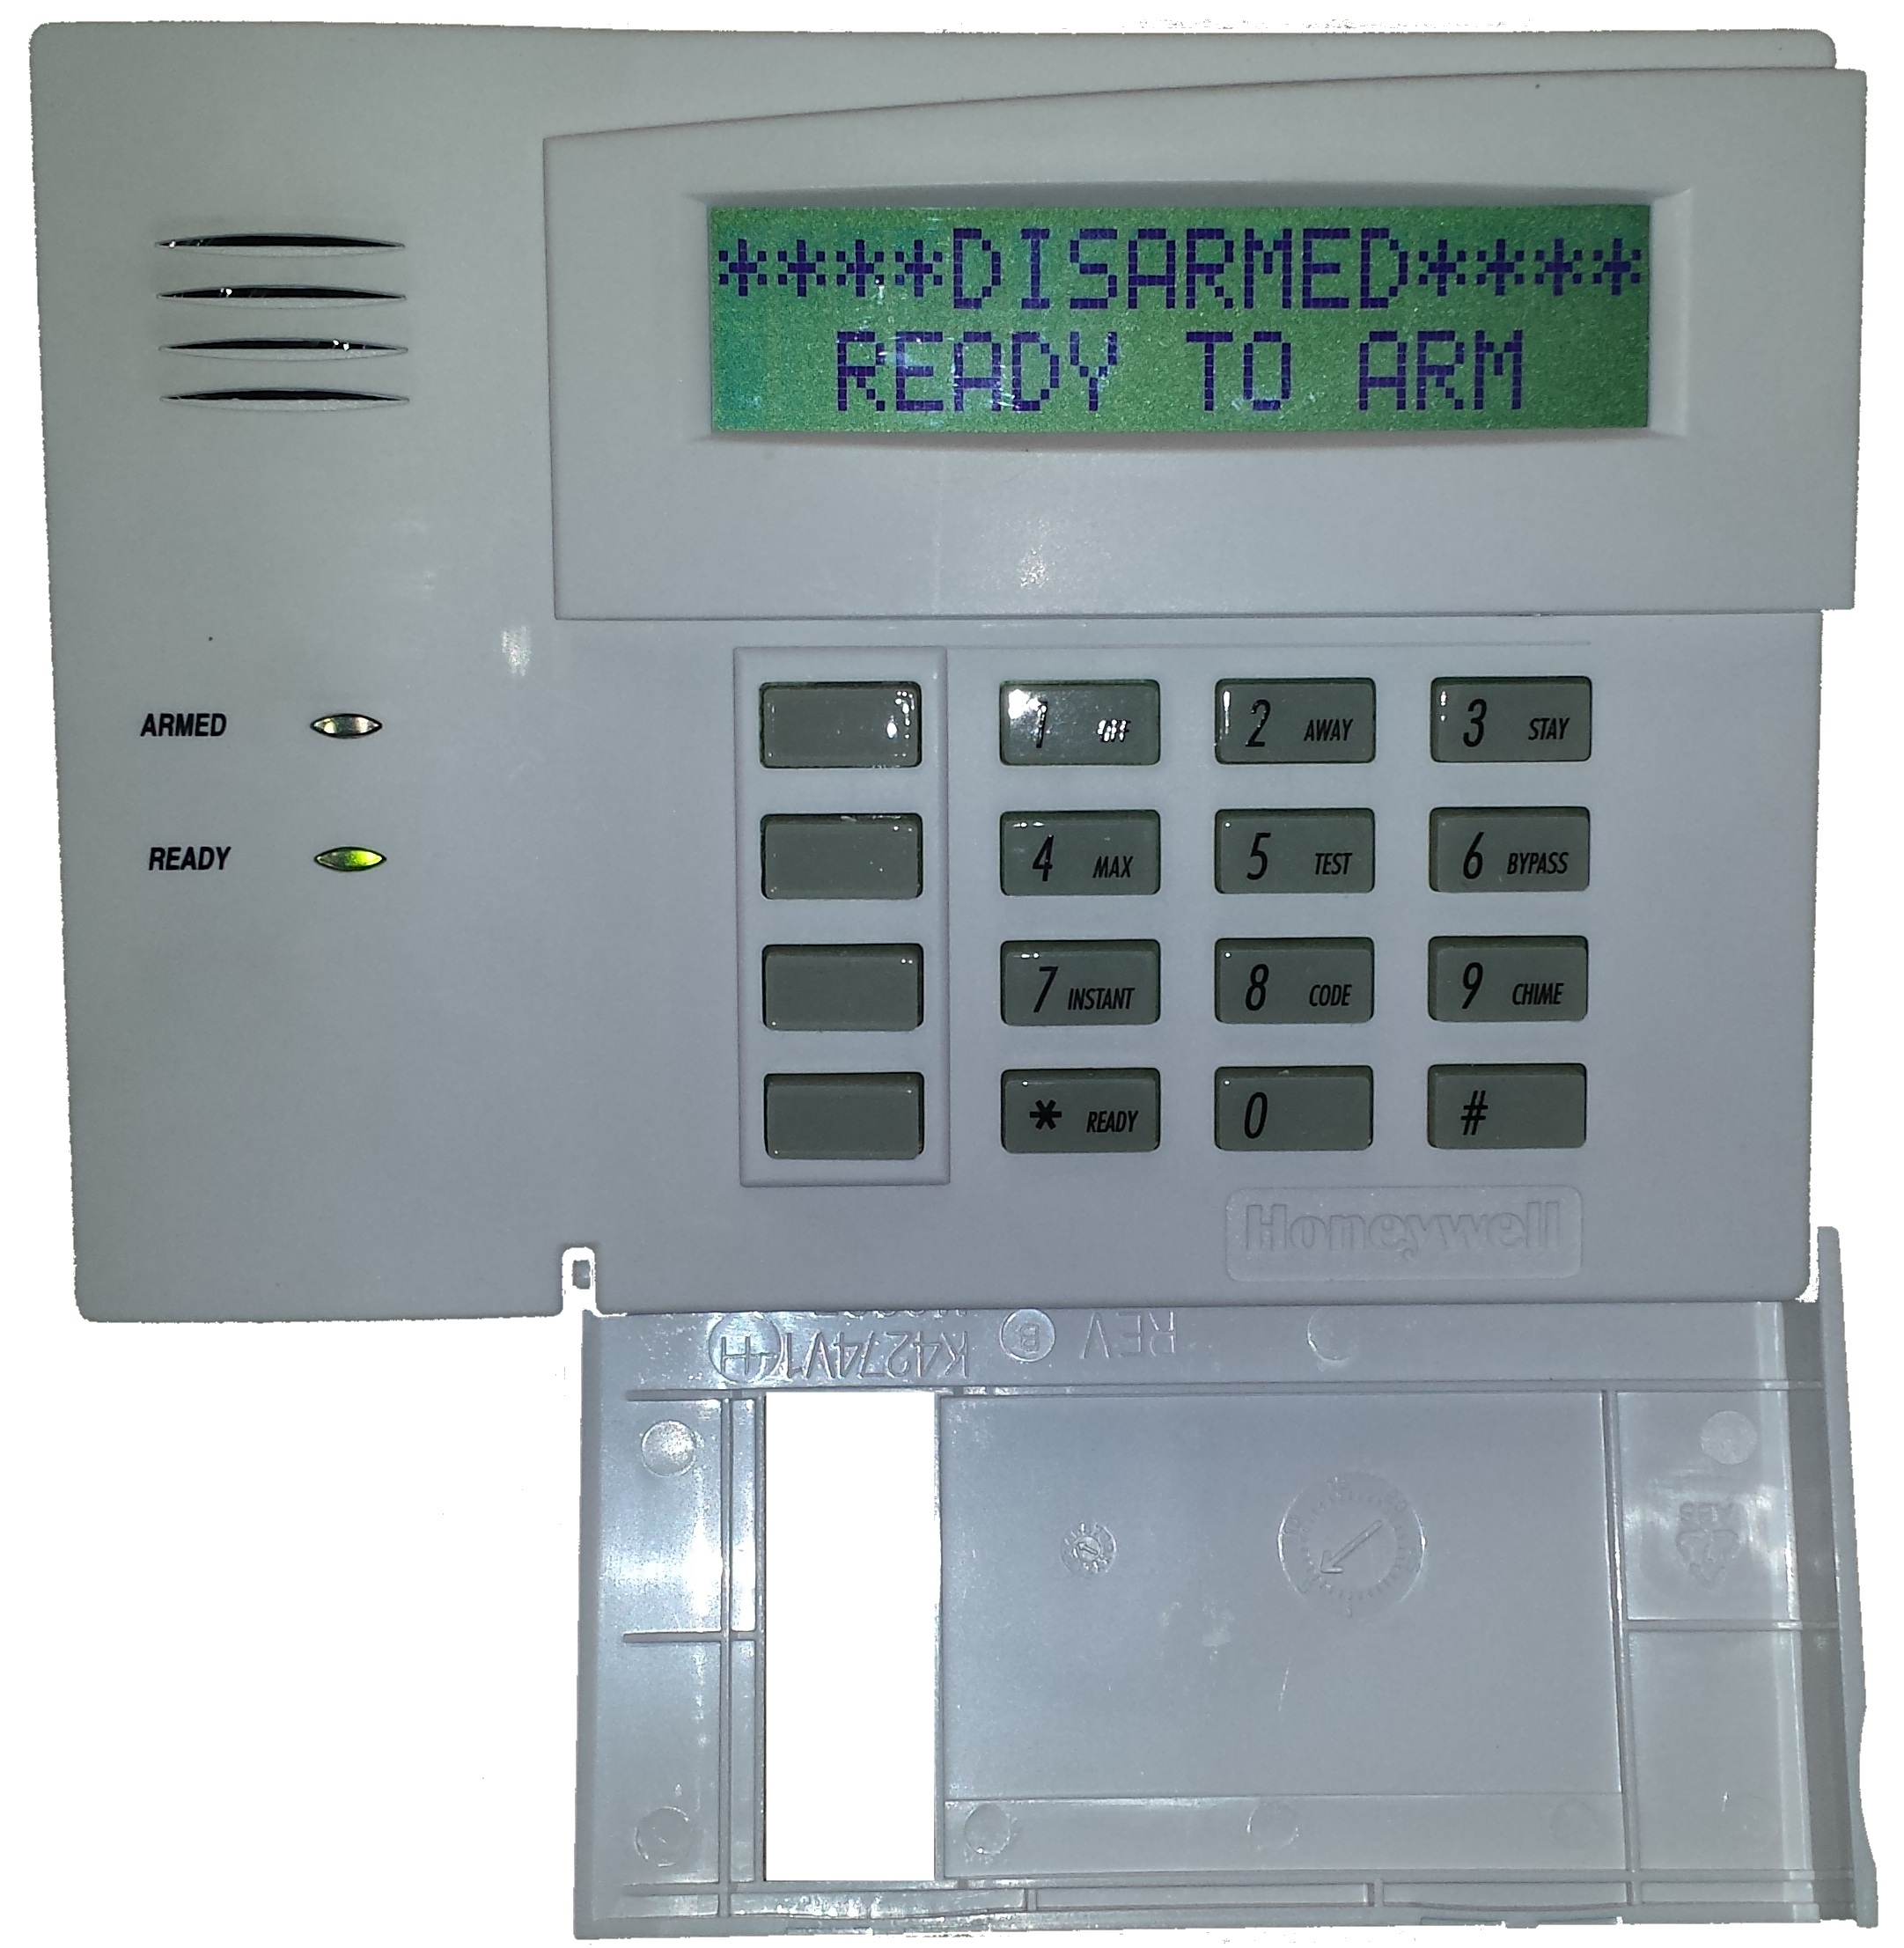 tech tips how to check a trouble condition on a honeywell vista alarm monitoring panel keypad. Black Bedroom Furniture Sets. Home Design Ideas